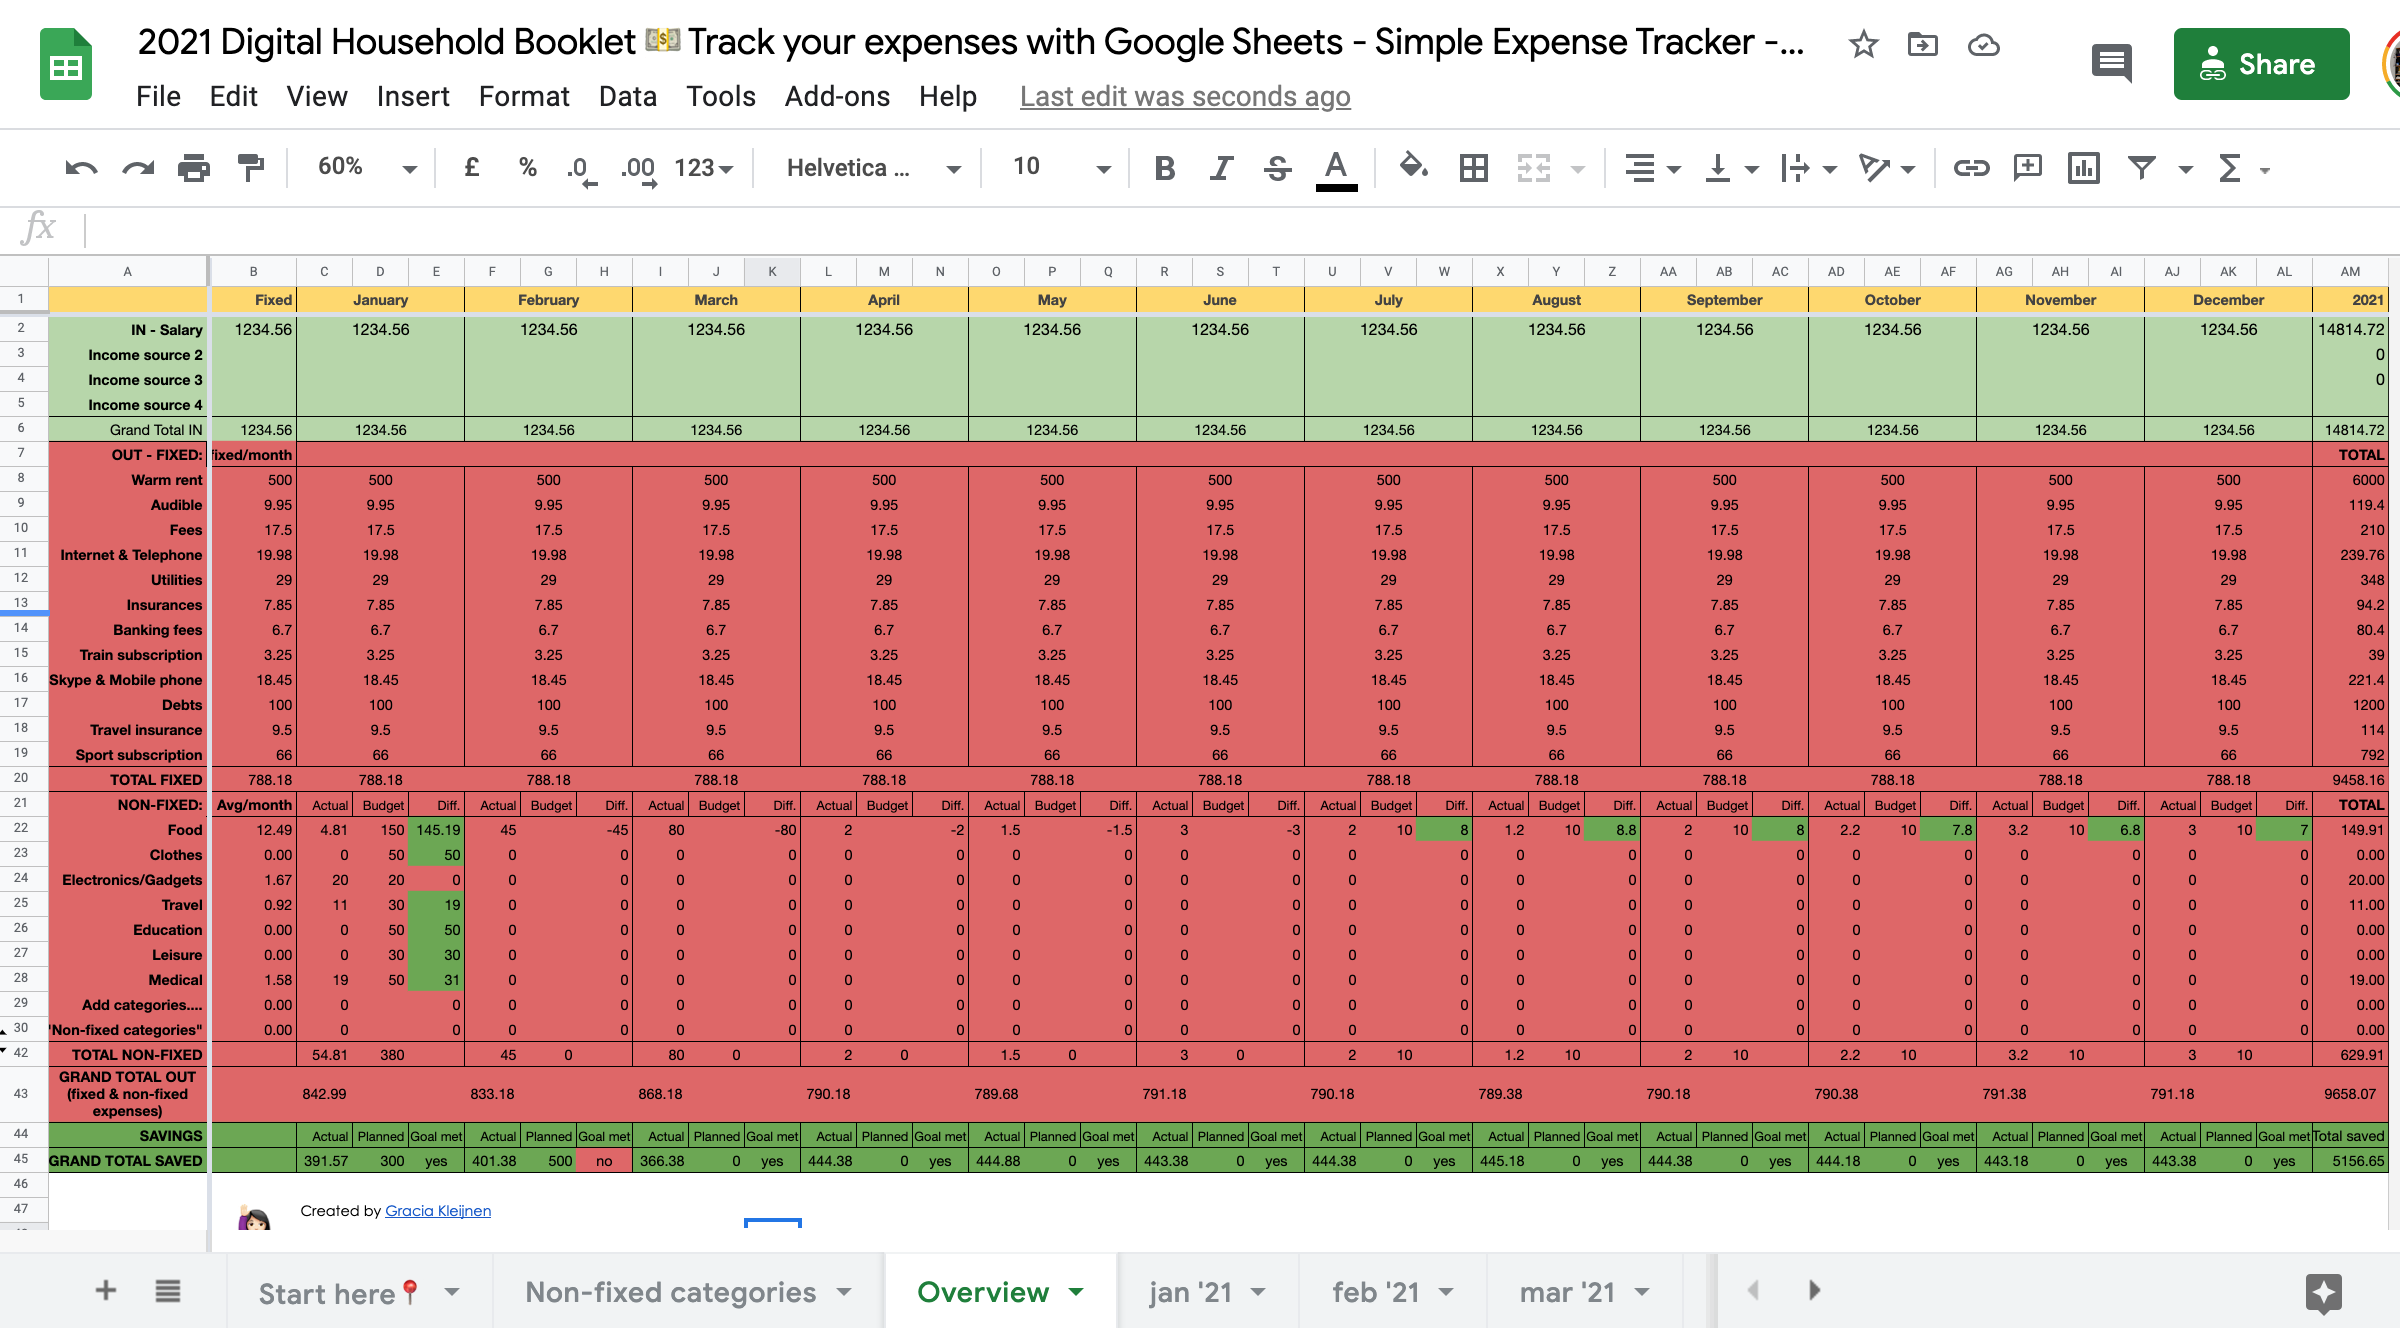 Full Size of Budget Spreadsheet Business Software Free Monthly Google Sheets